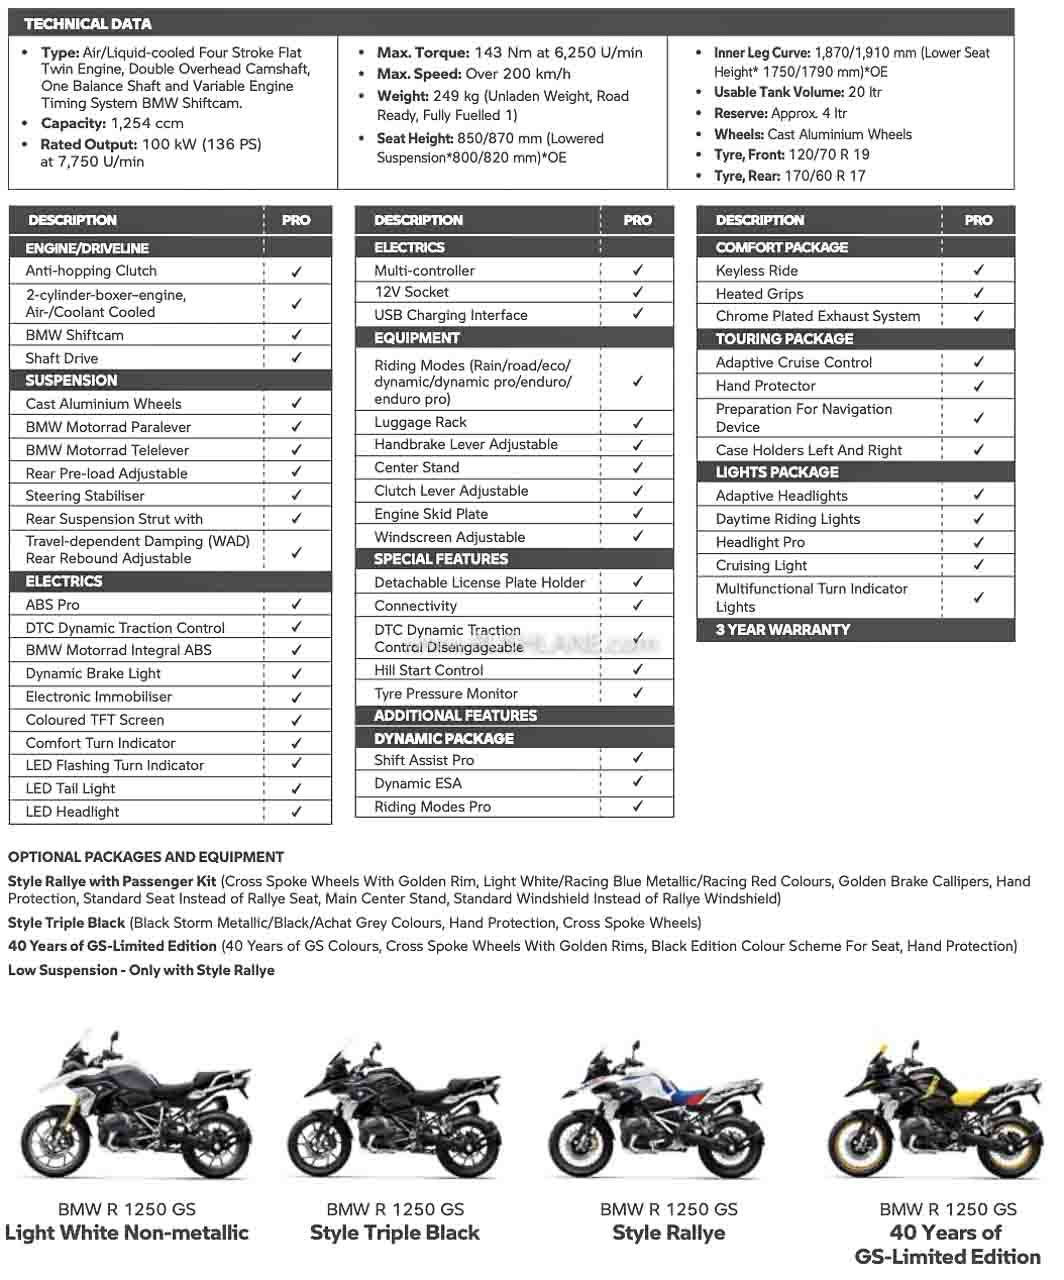 2021 BMW R 1250 GS Specs / Features